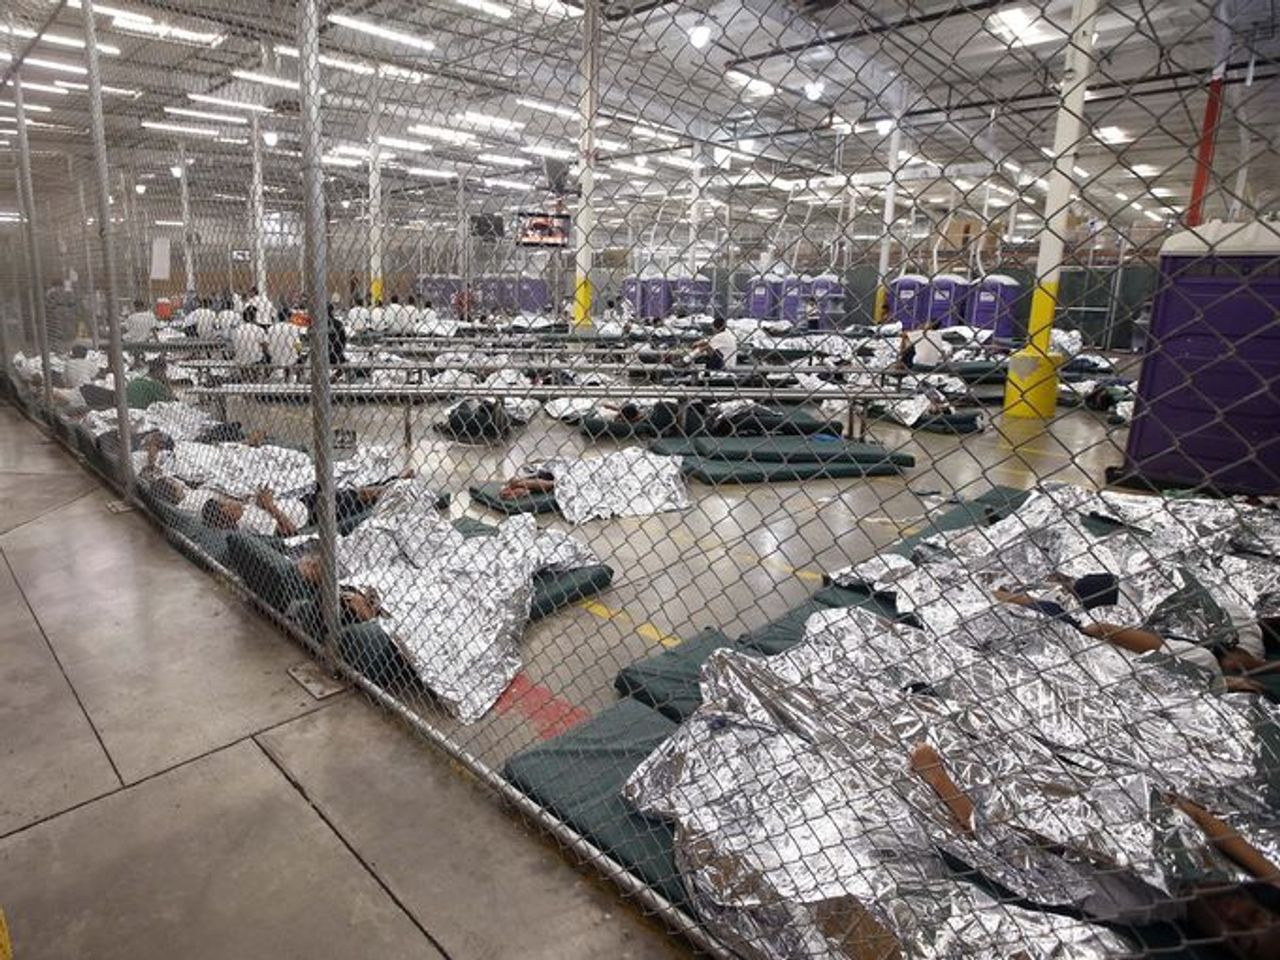 Obama Held More Migrant Children In Shelters Than Trump